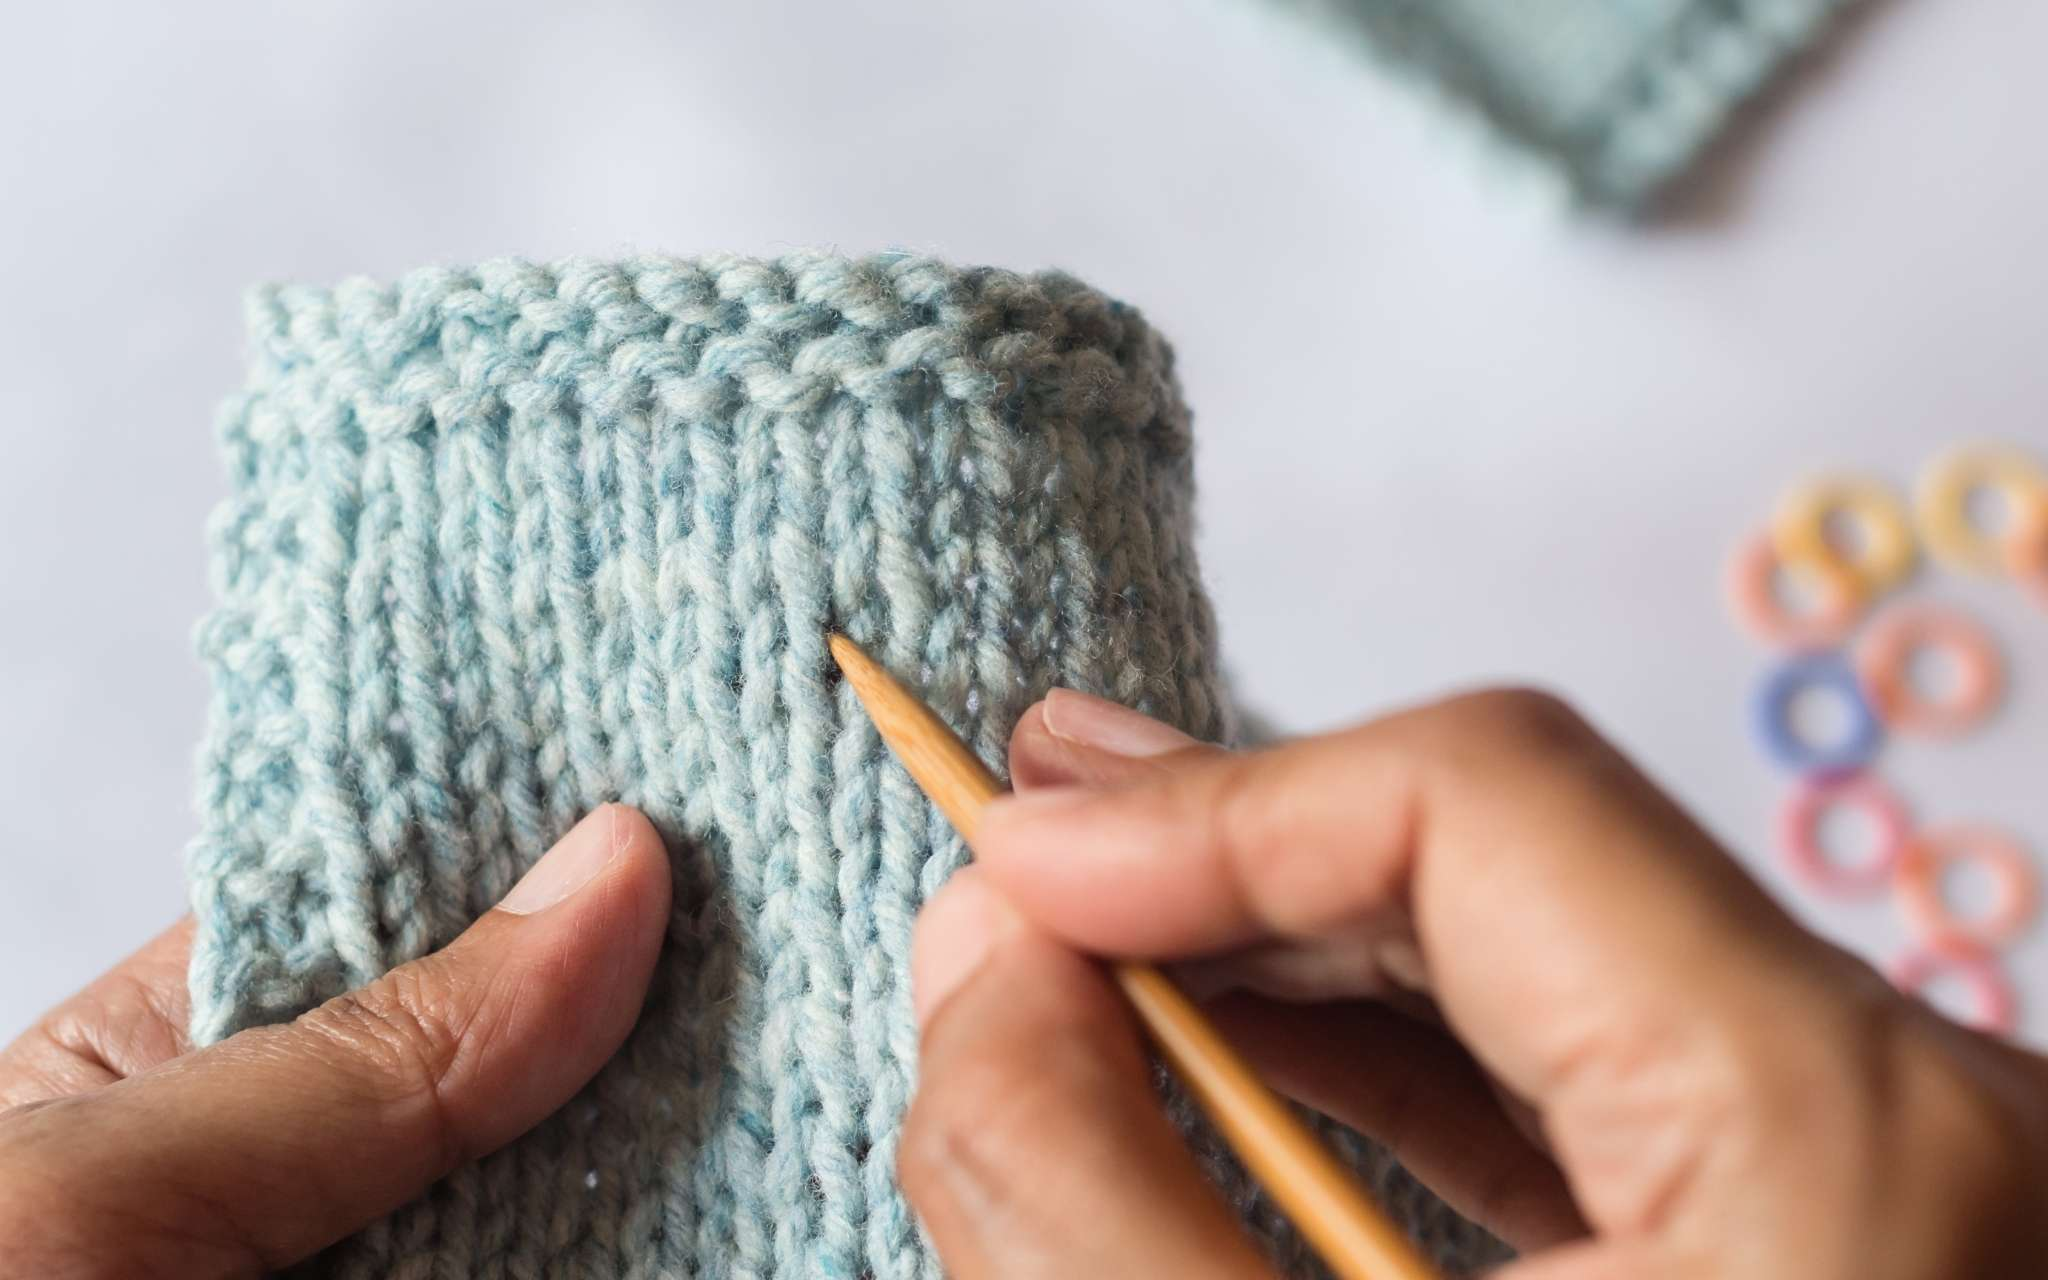 A swatch is held close to the camera and a wooden knitting needle points closely at the stitches as they are counted.